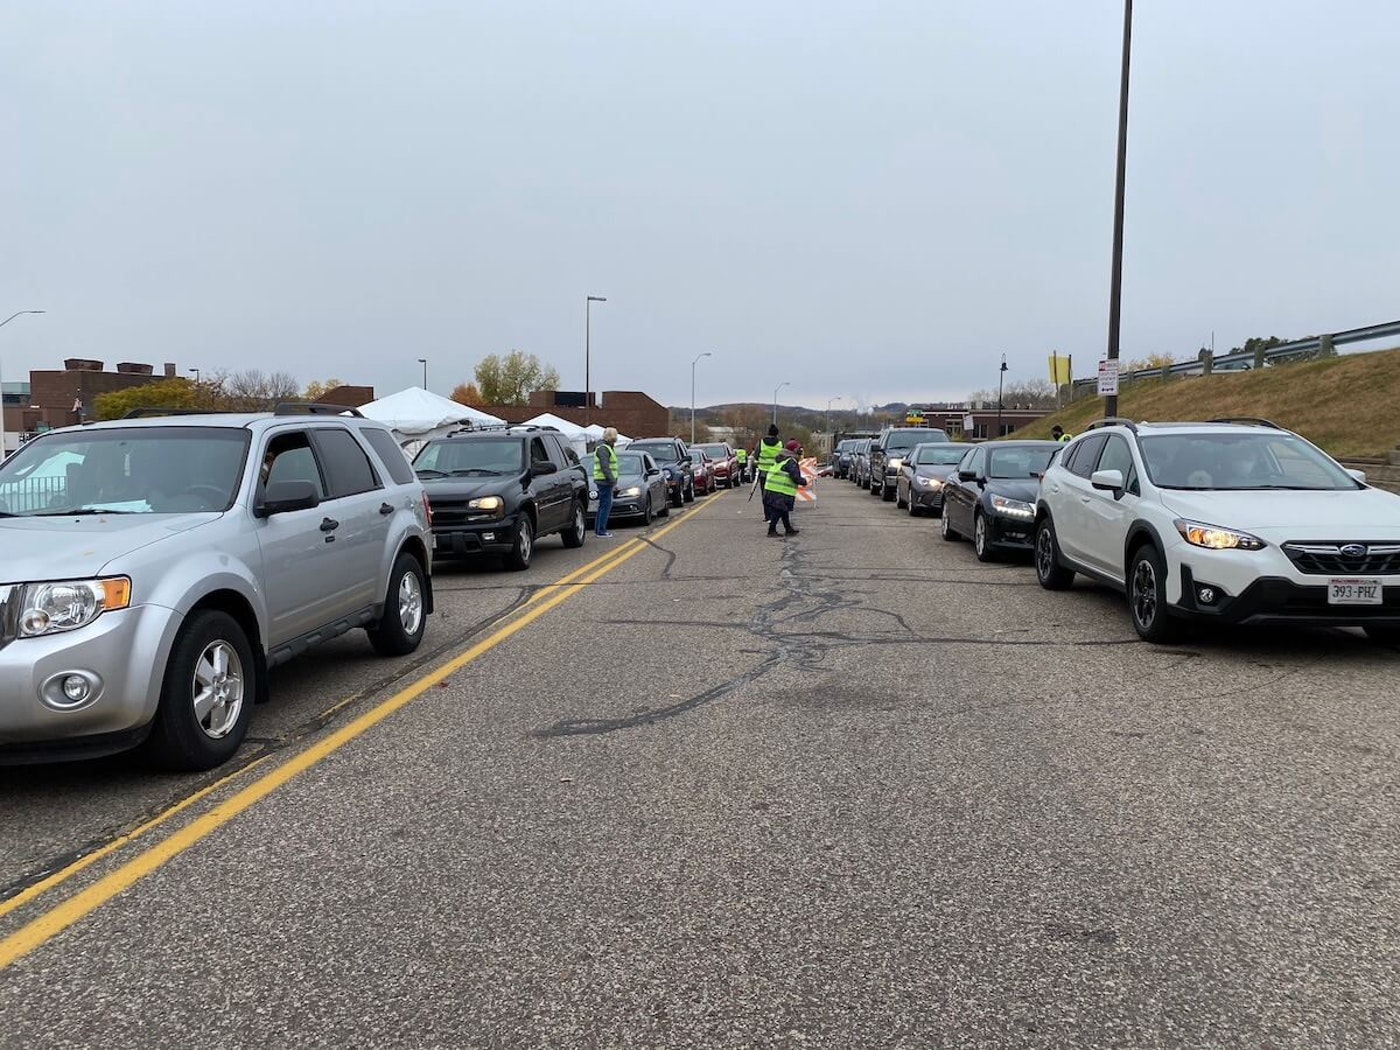 Dozens of vehicles line South Dewey Street near City Hall in Eau Claire as motorists cast ballots on the first day of early in-person voting in Wisconsin for the Nov. 3 election. (Photo by Julian Emerson)